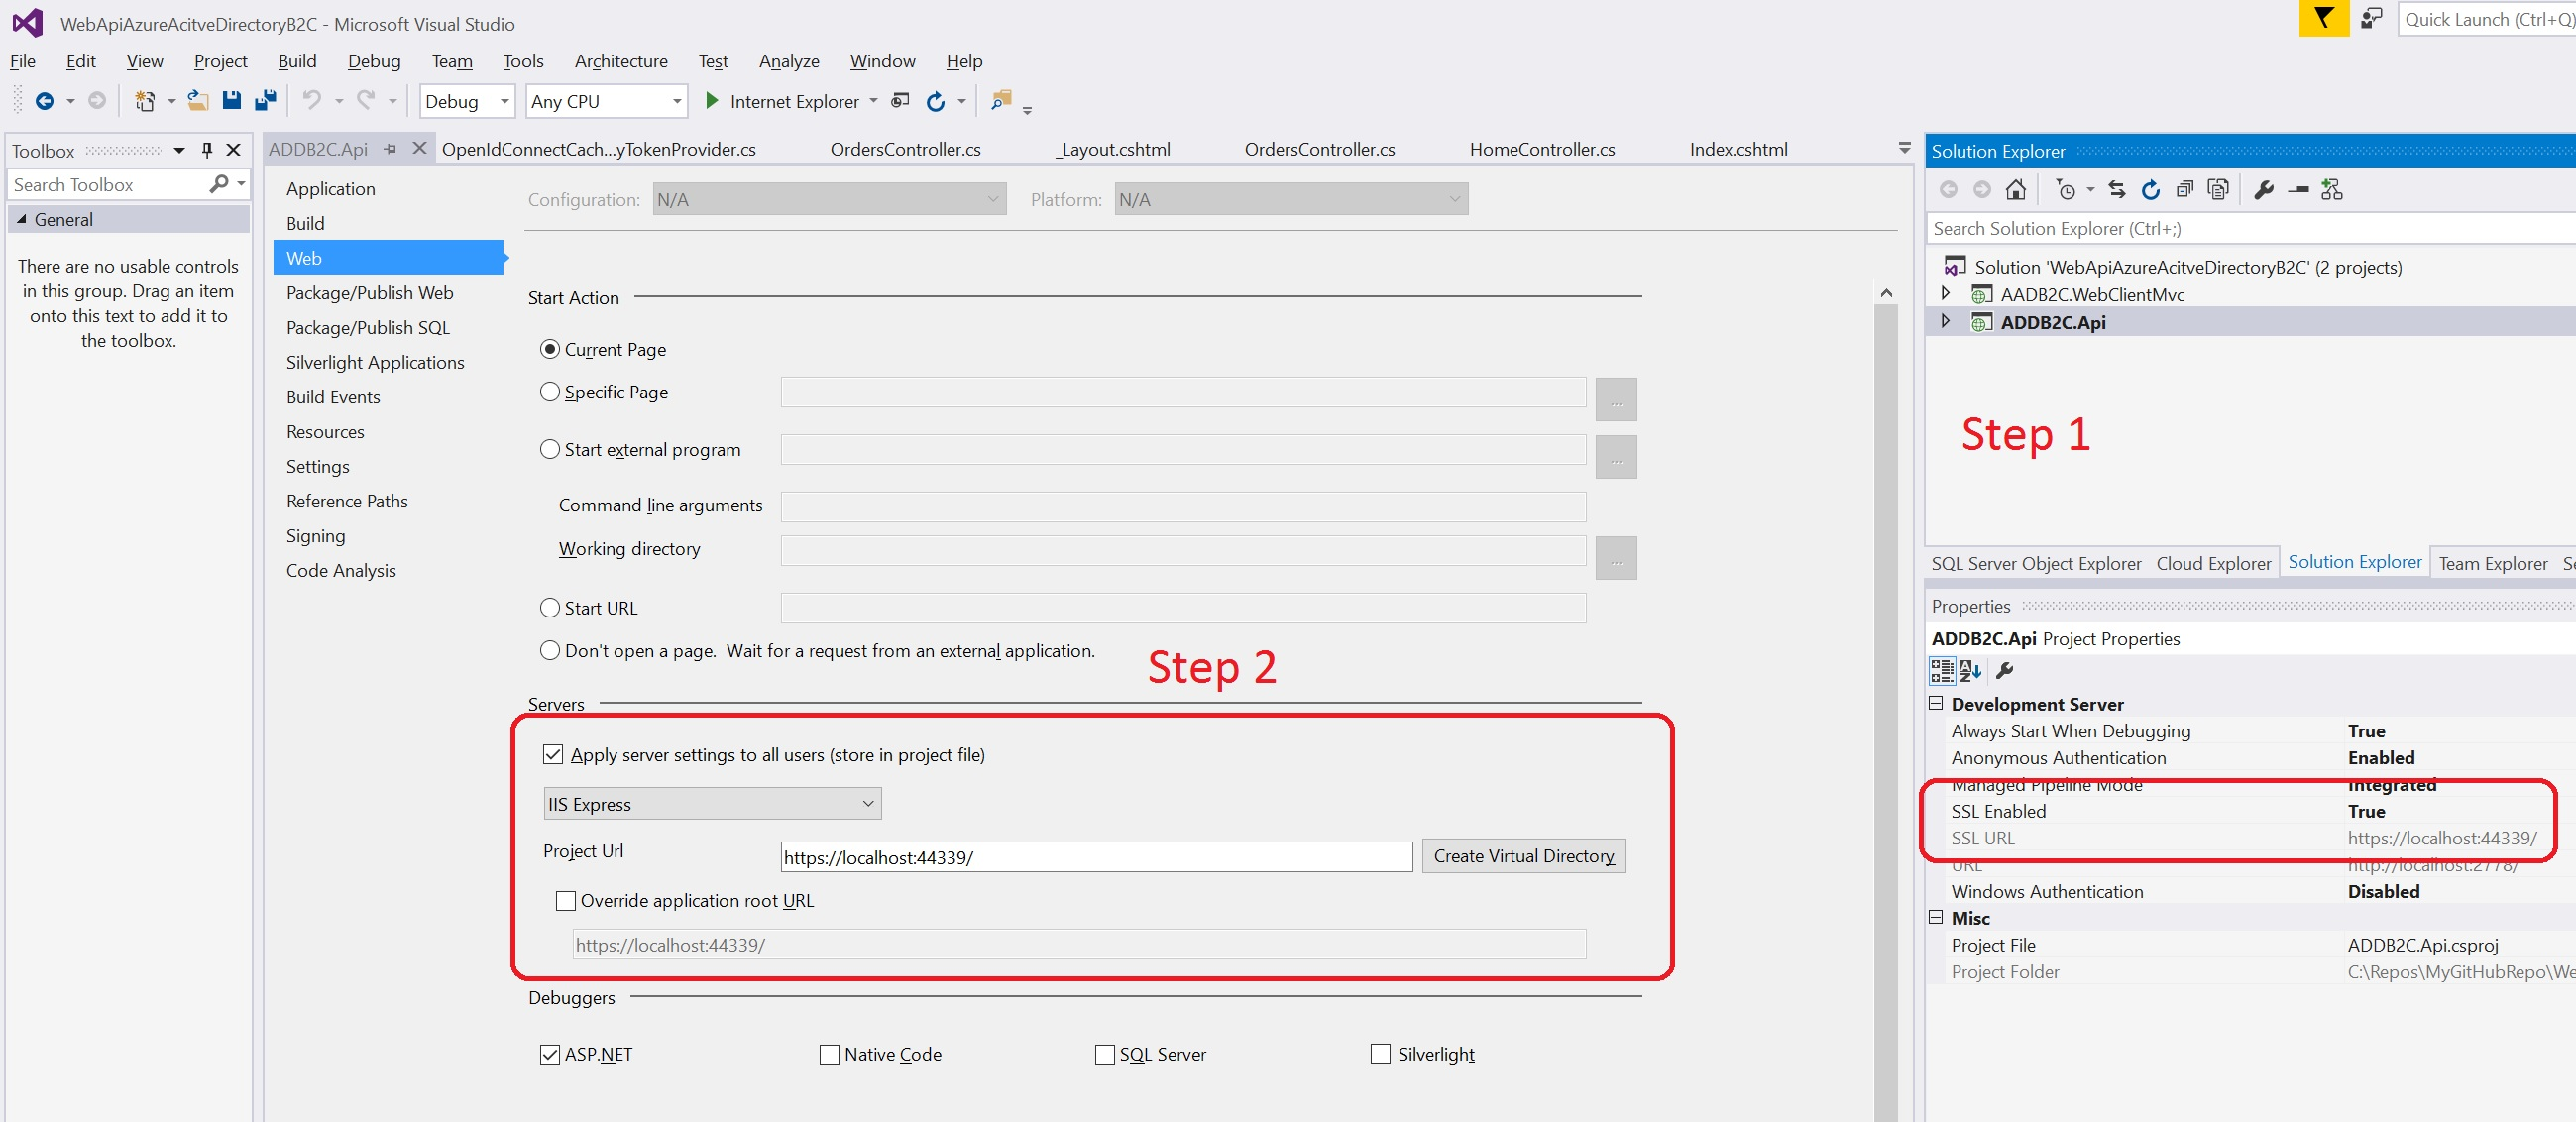 Azure Active Directory B2C Overview and Policies Management